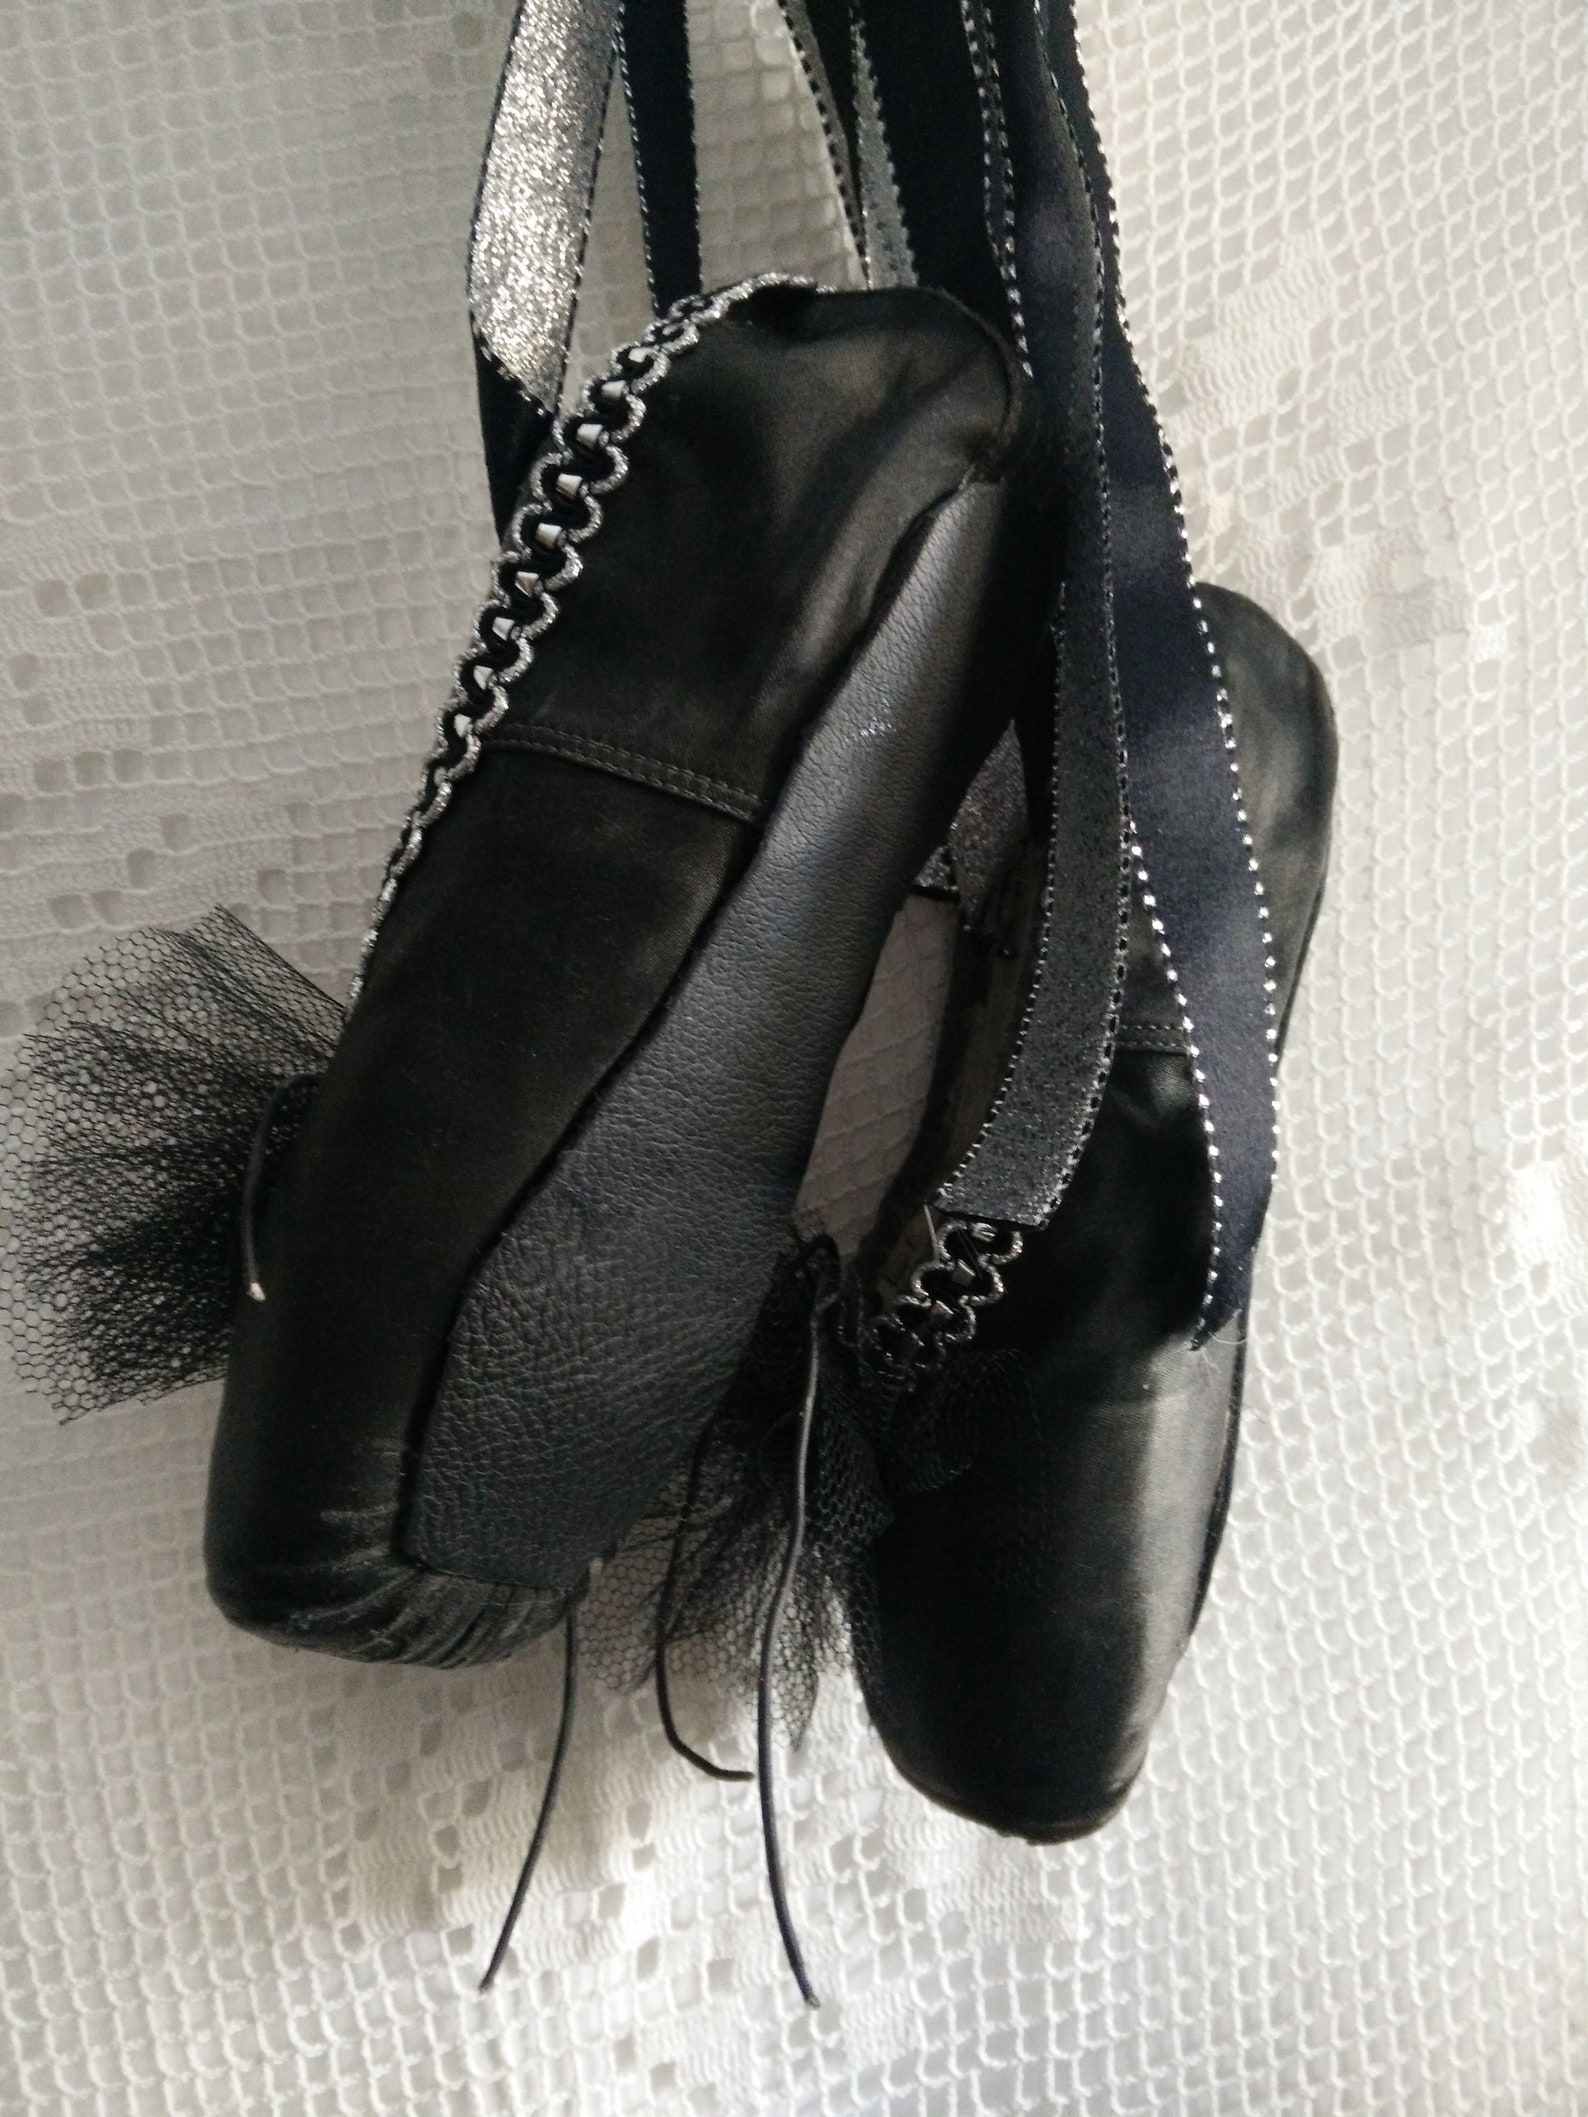 black vintage used, distressed pointe shoes, balerina shoes, ballet shoes, shabby chic, brocante, boudoir style, french chic, gu